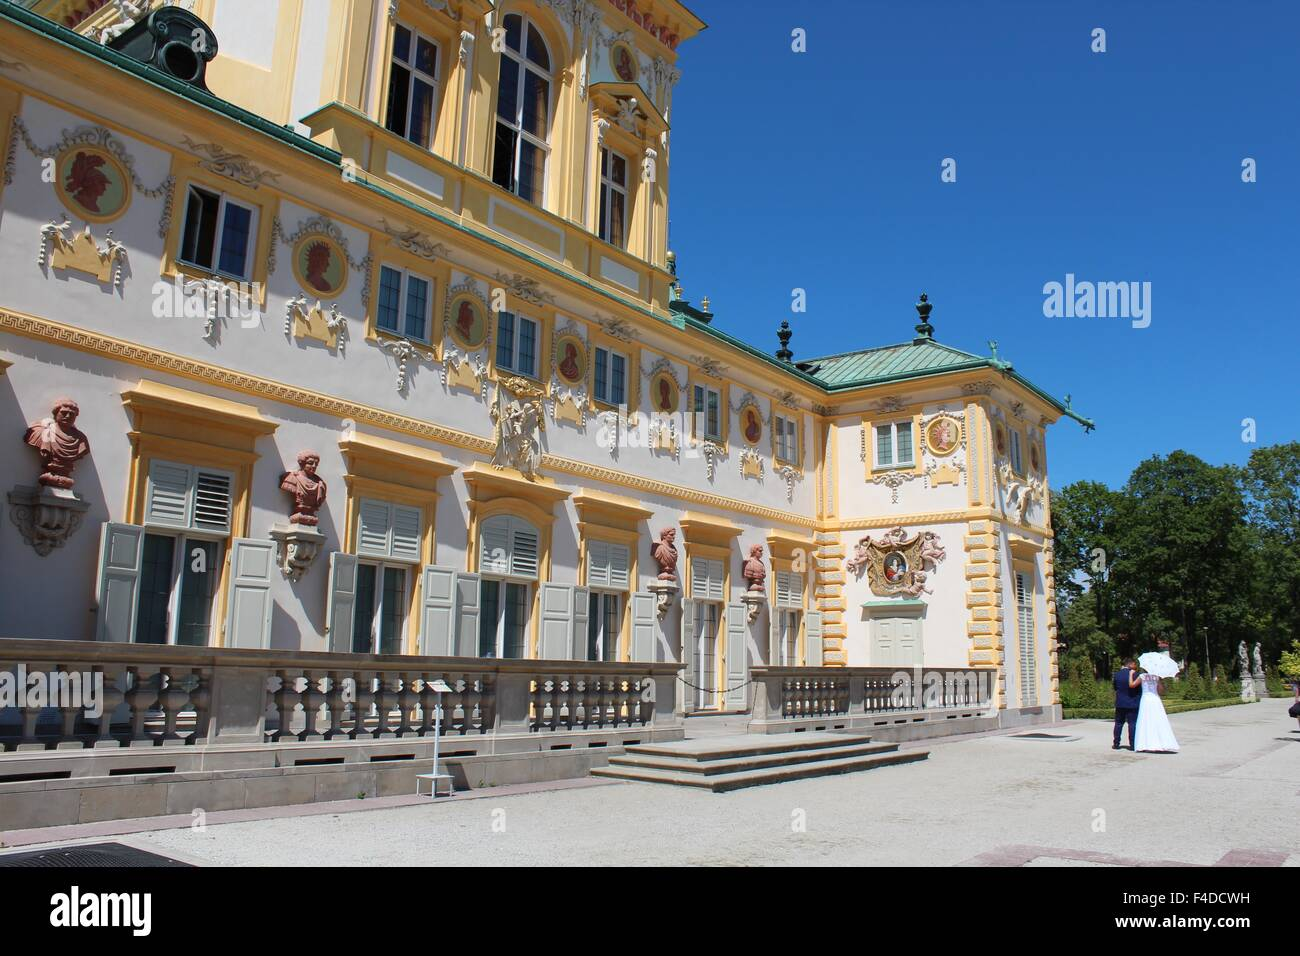 Newlyweds at Wilanów Palace in Warsaw, Poland - Stock Image